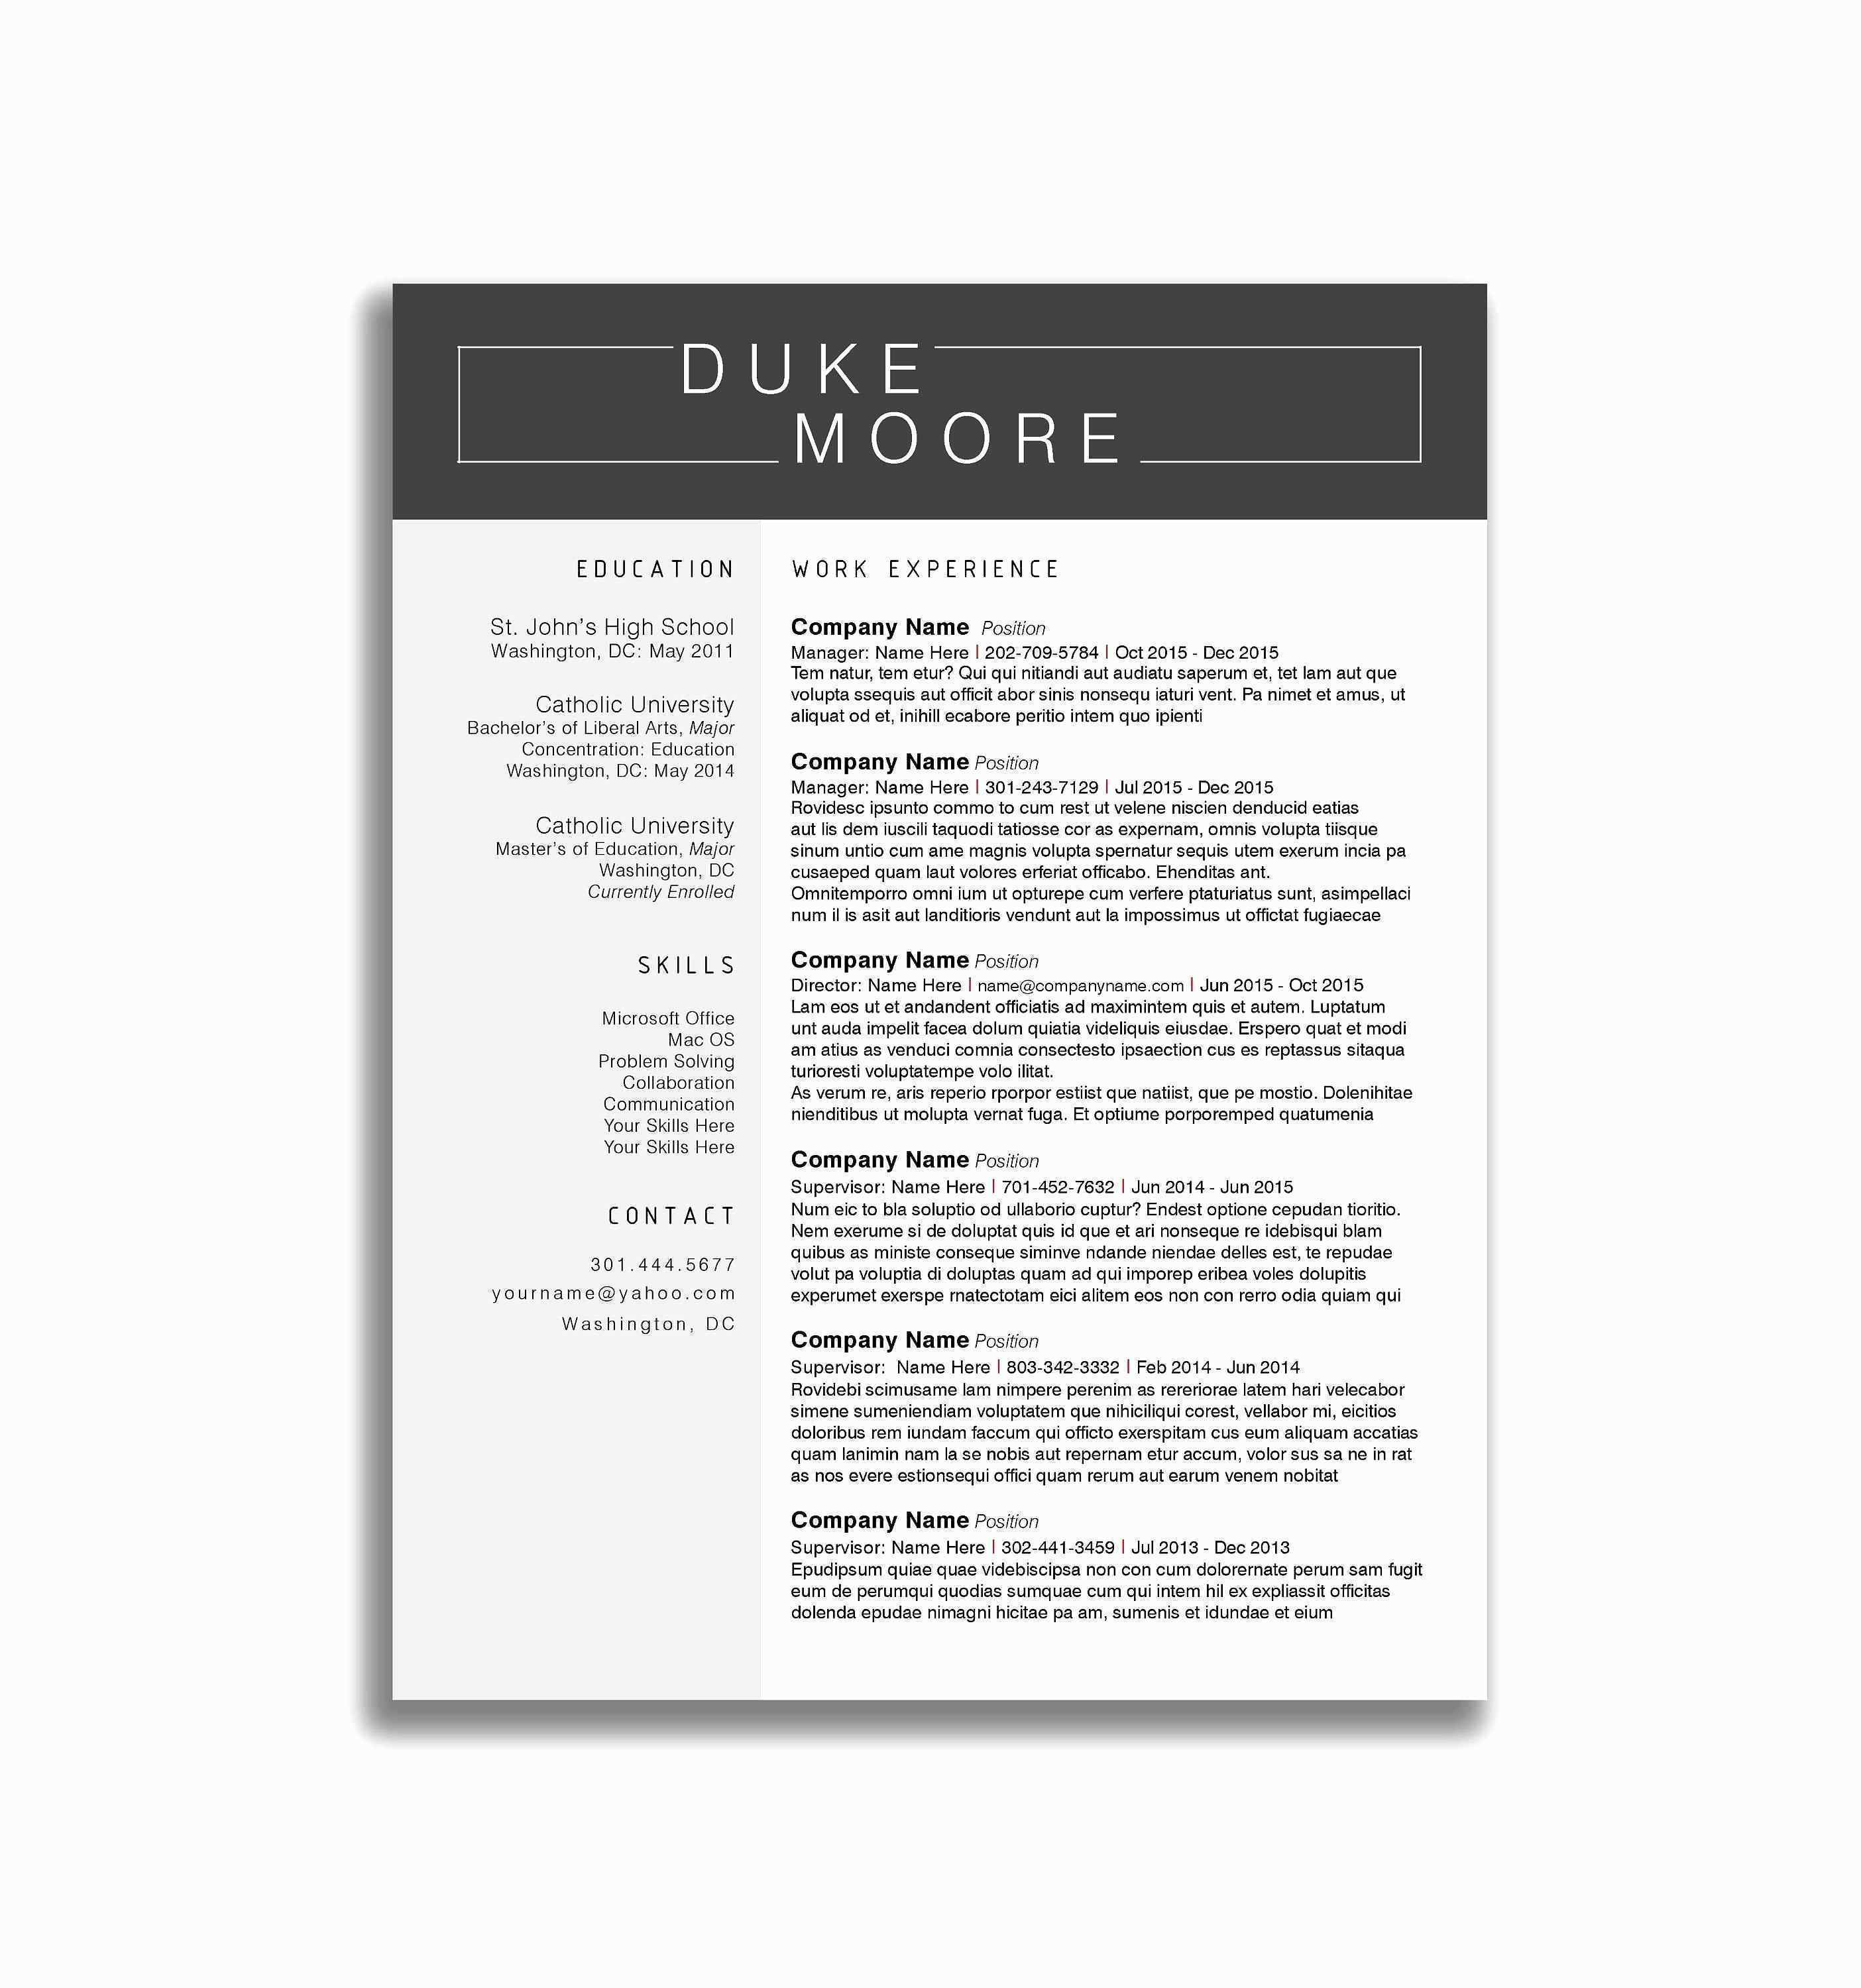 Business Analyst Healthcare Resume - Quality assurance Analyst Cover Letter Elegant 45 Luxury Business